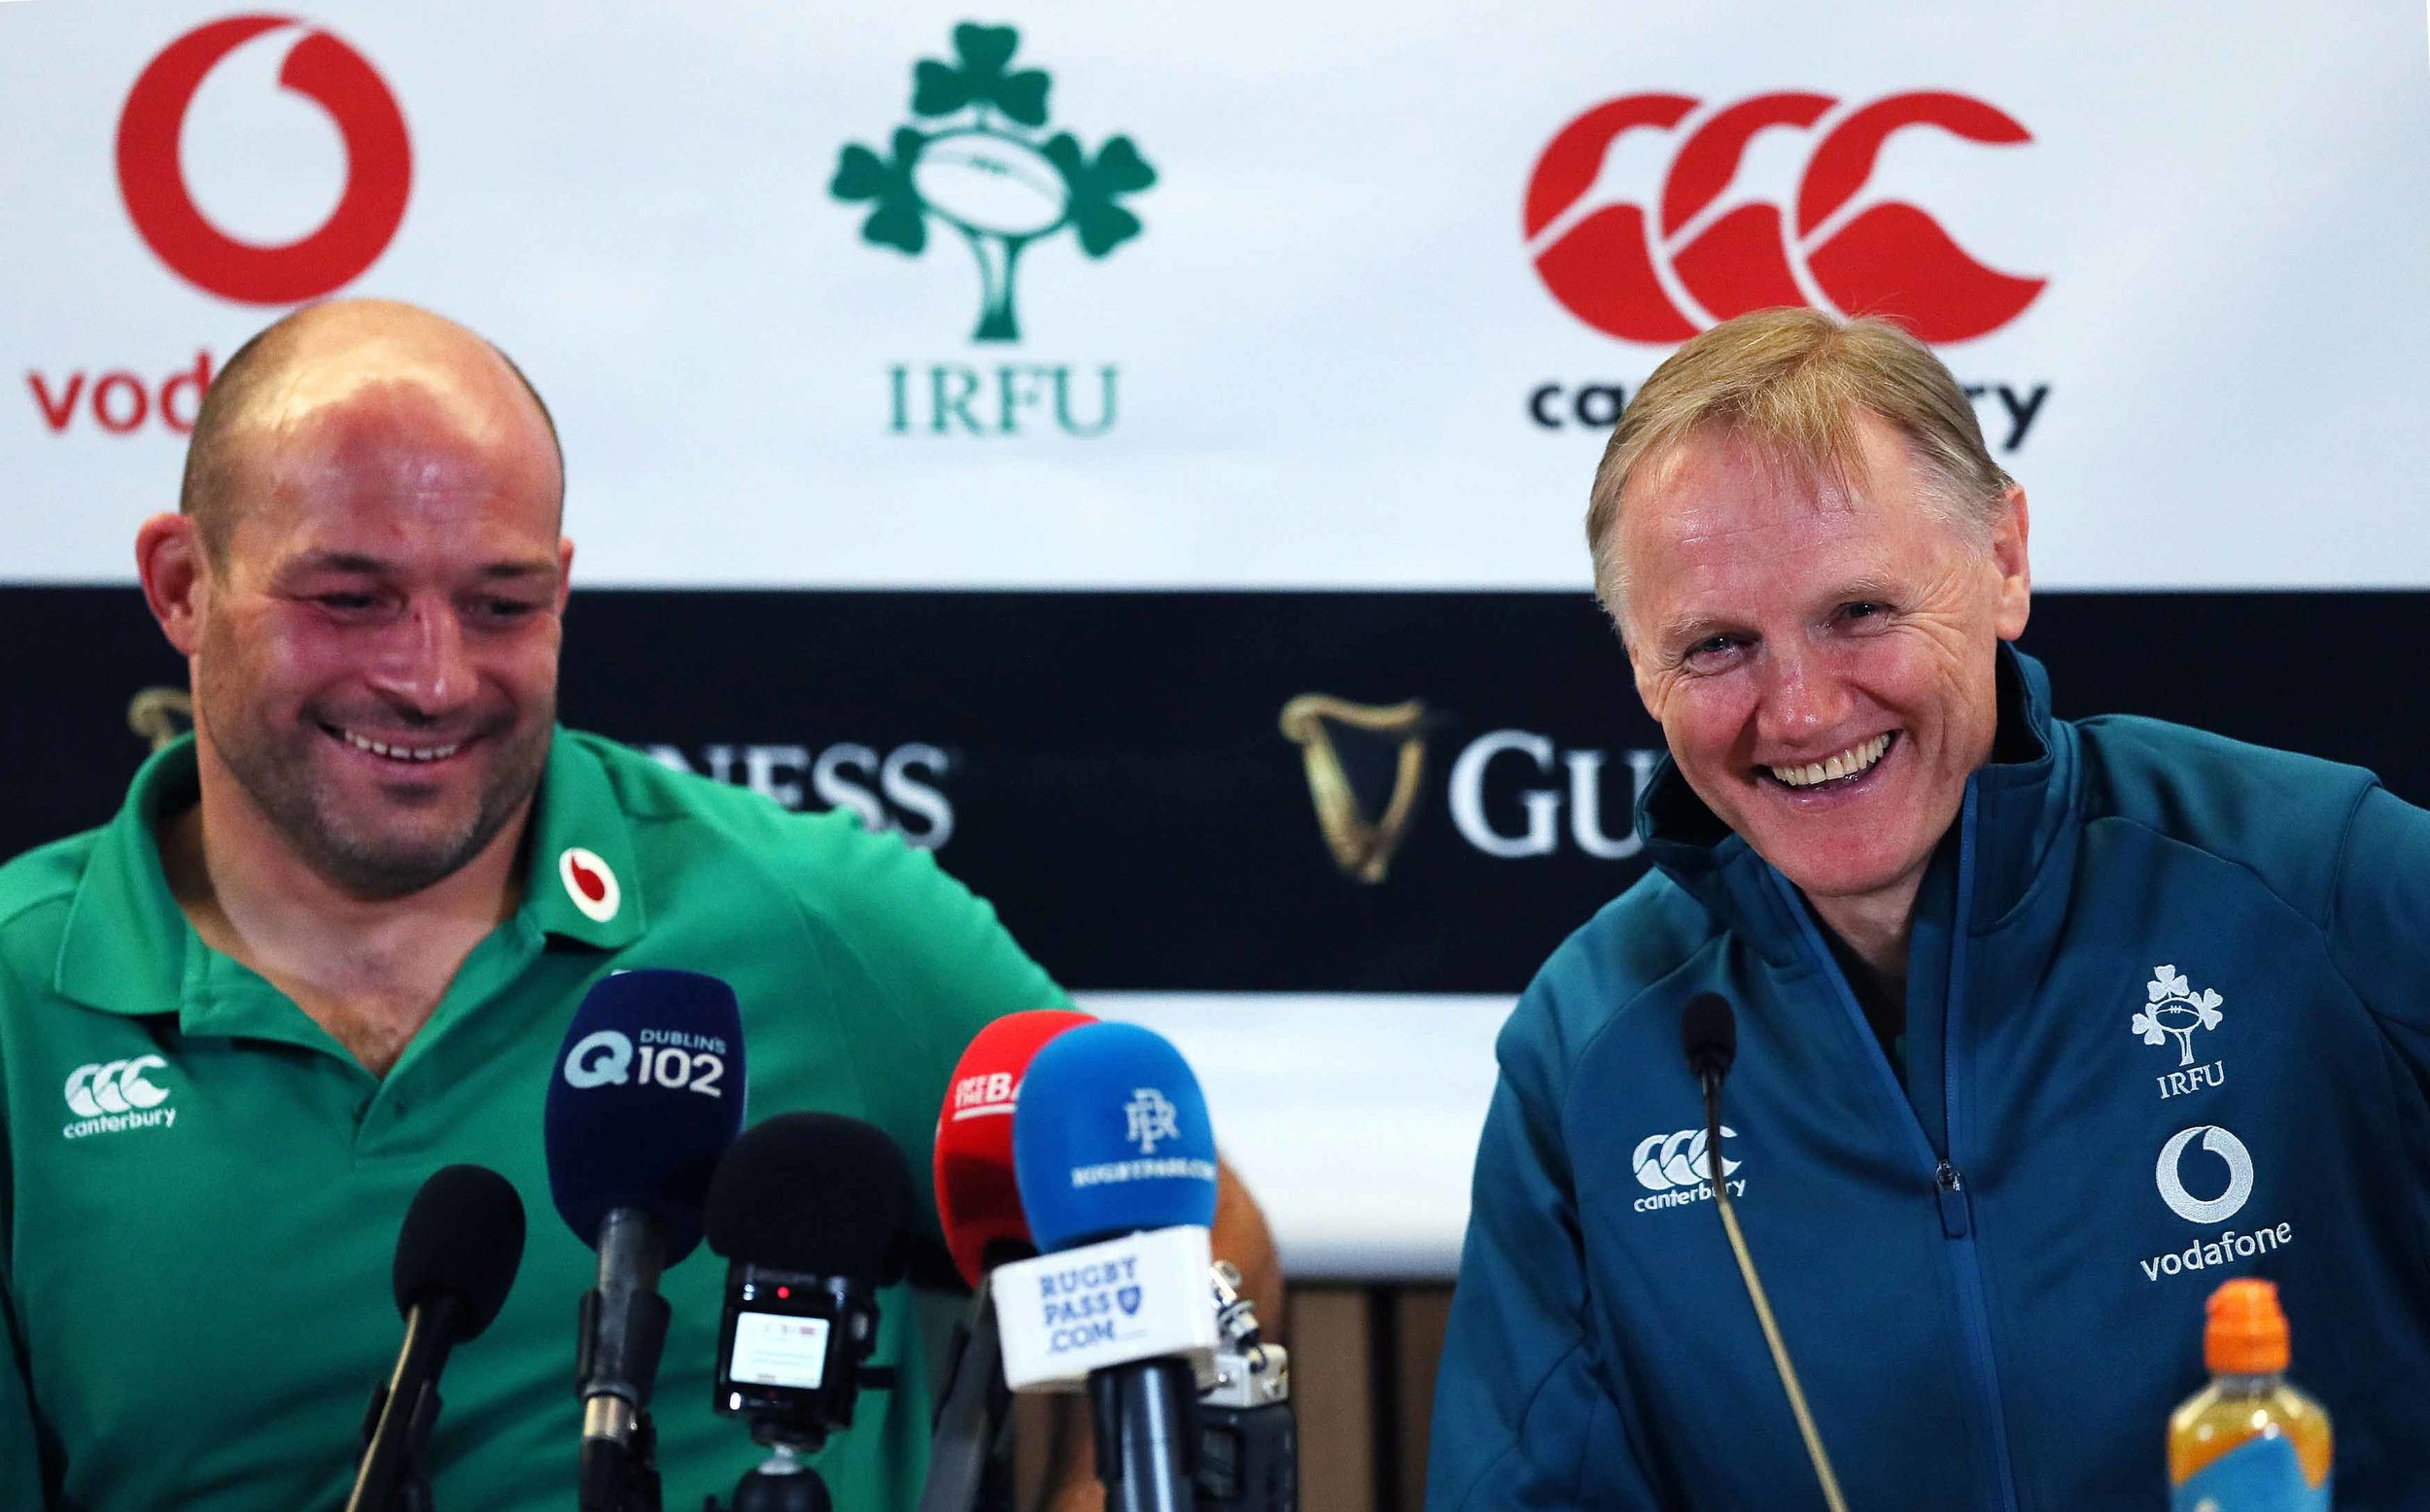 Ireland's delighted coach Joe Schmidt and captain Rory Best after the historic win.